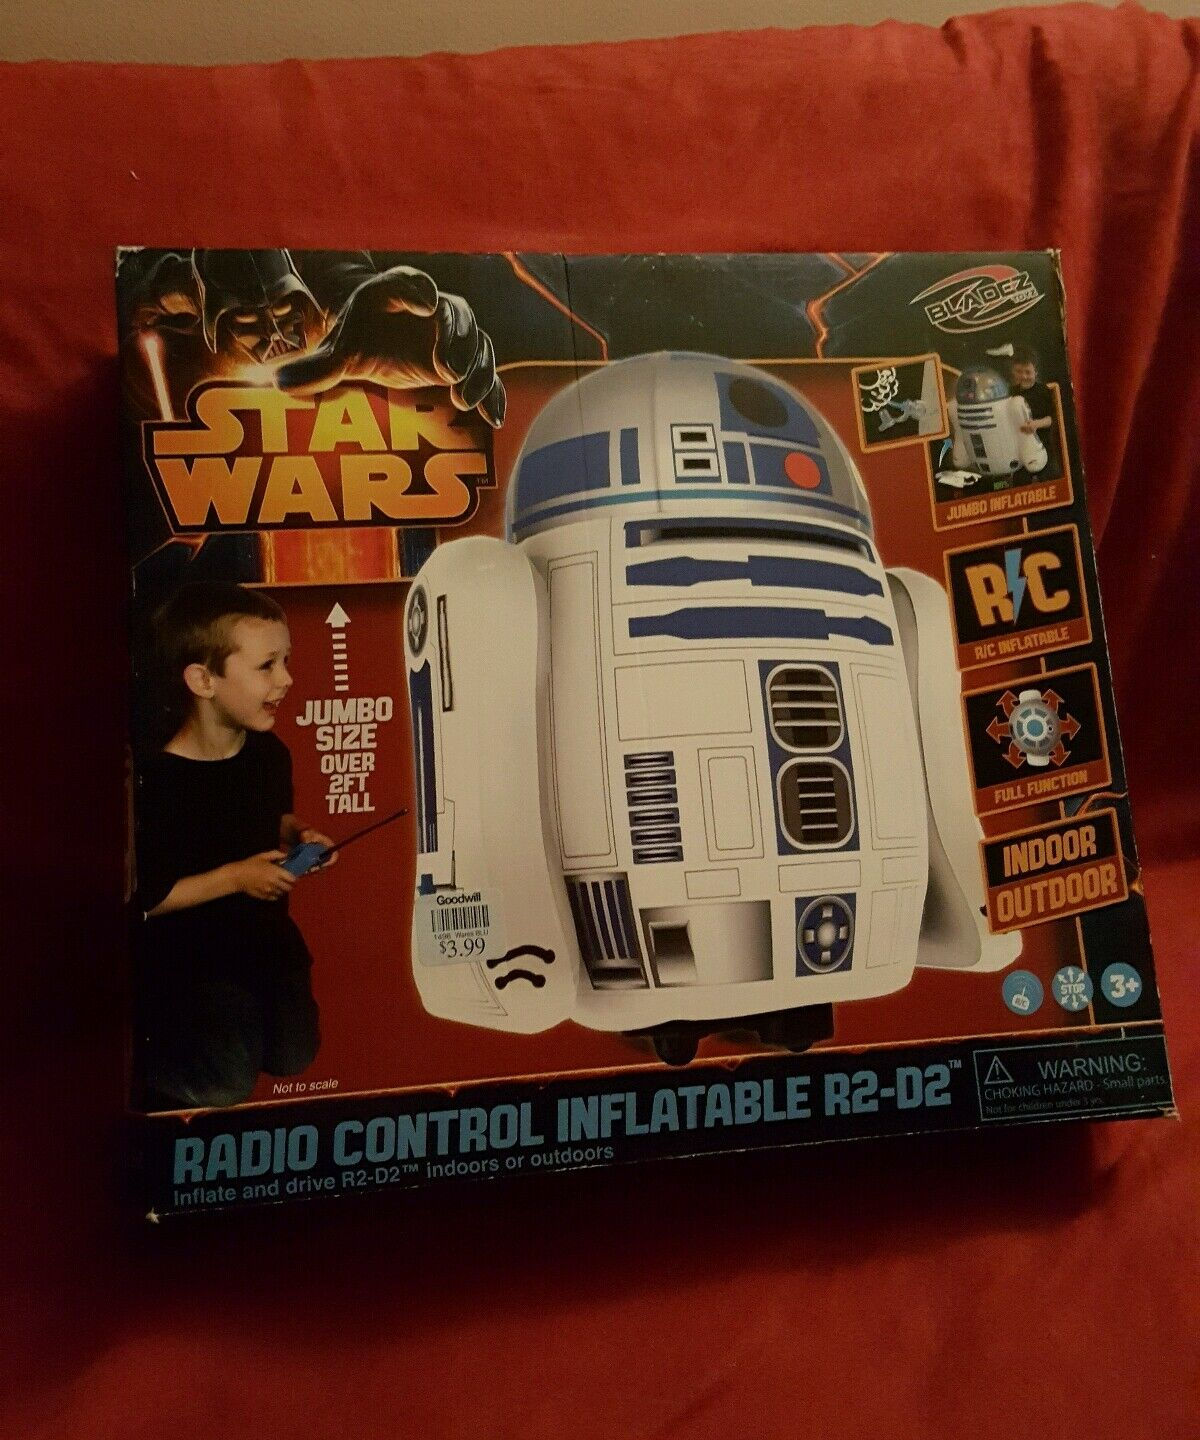 Estrella  guerras R2-D2 Inflatable Droid R C Remote Control Controlled NIB International  prezzi all'ingrosso